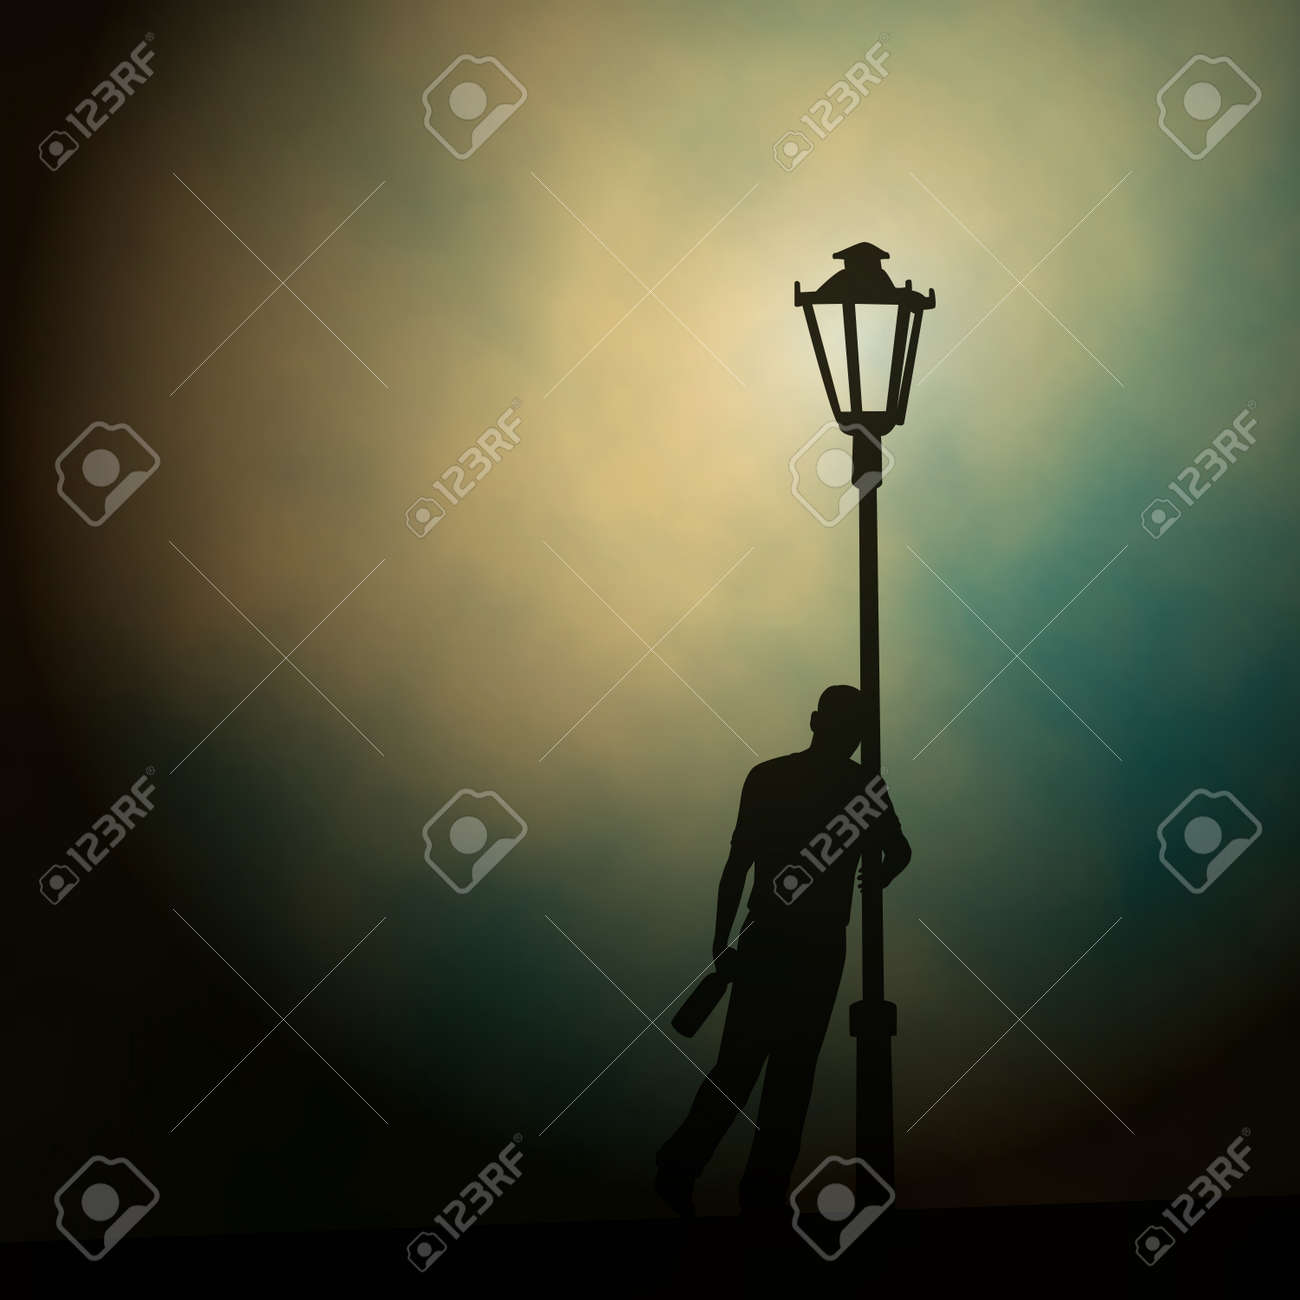 Illustration Of A Drunken Man Leaning Against A Lamp Post At